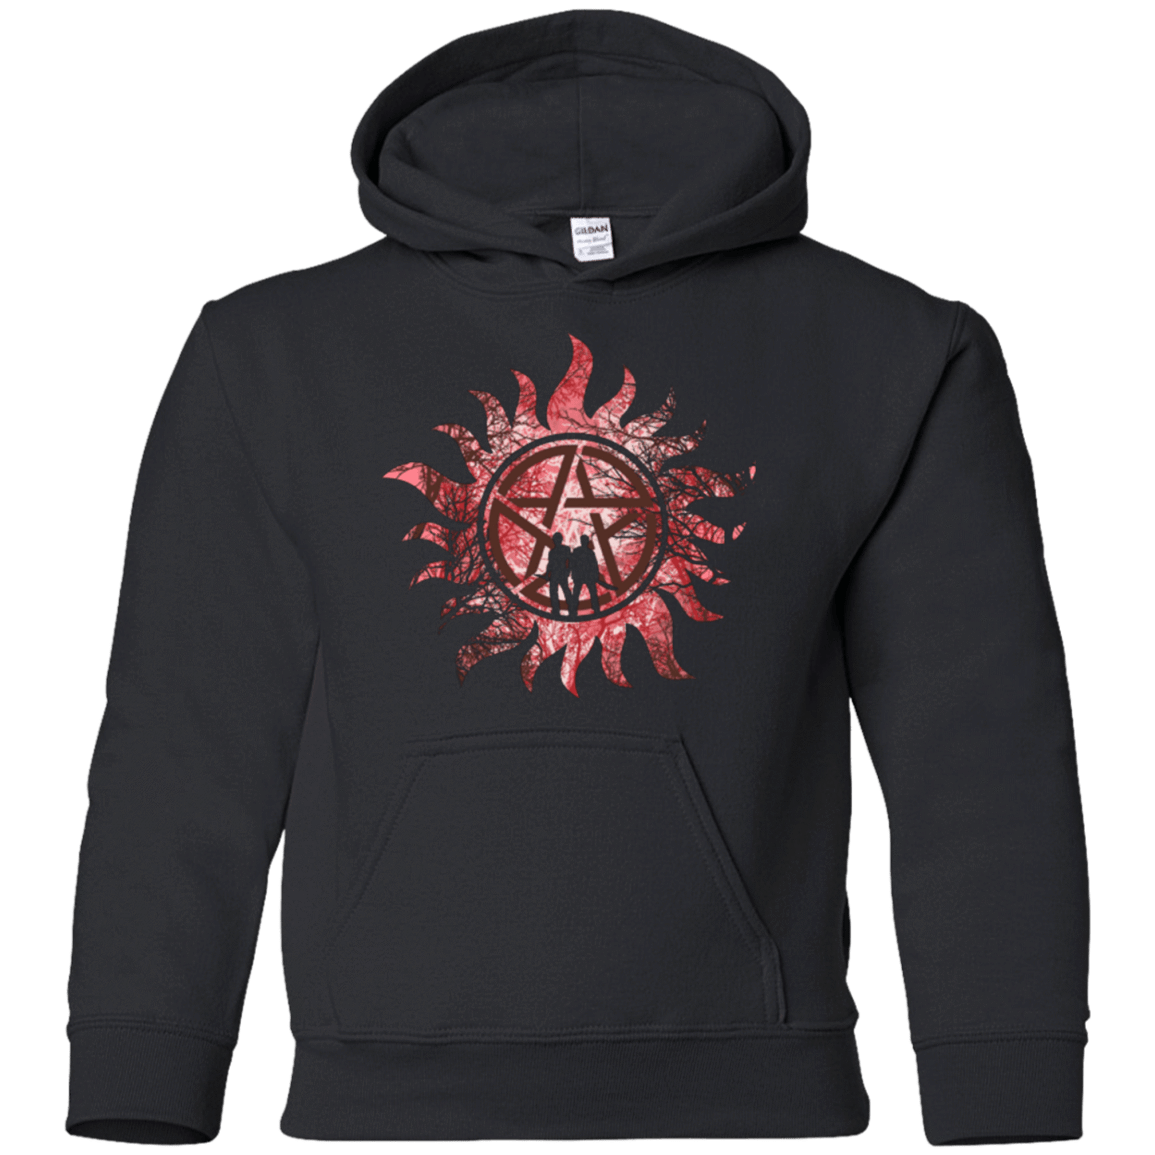 The Hunters Youth Hoodie